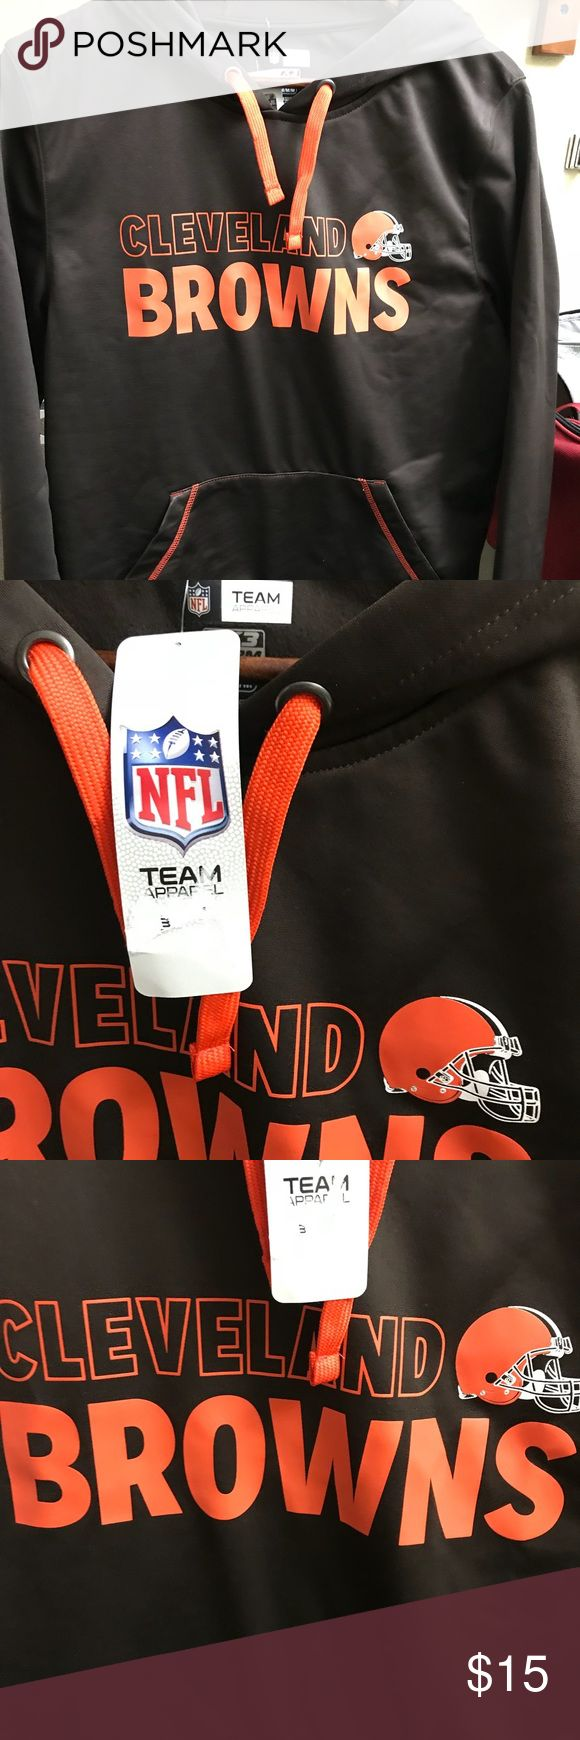 NFL Cleveland Browns Men's Sweatshirt NFL Cleveland Browns Men's Sweatshirt. NFL liscensed TX3 Warm Technology. 100% Polyester. New condition with tags. NFL Shirts Sweatshirts & Hoodies